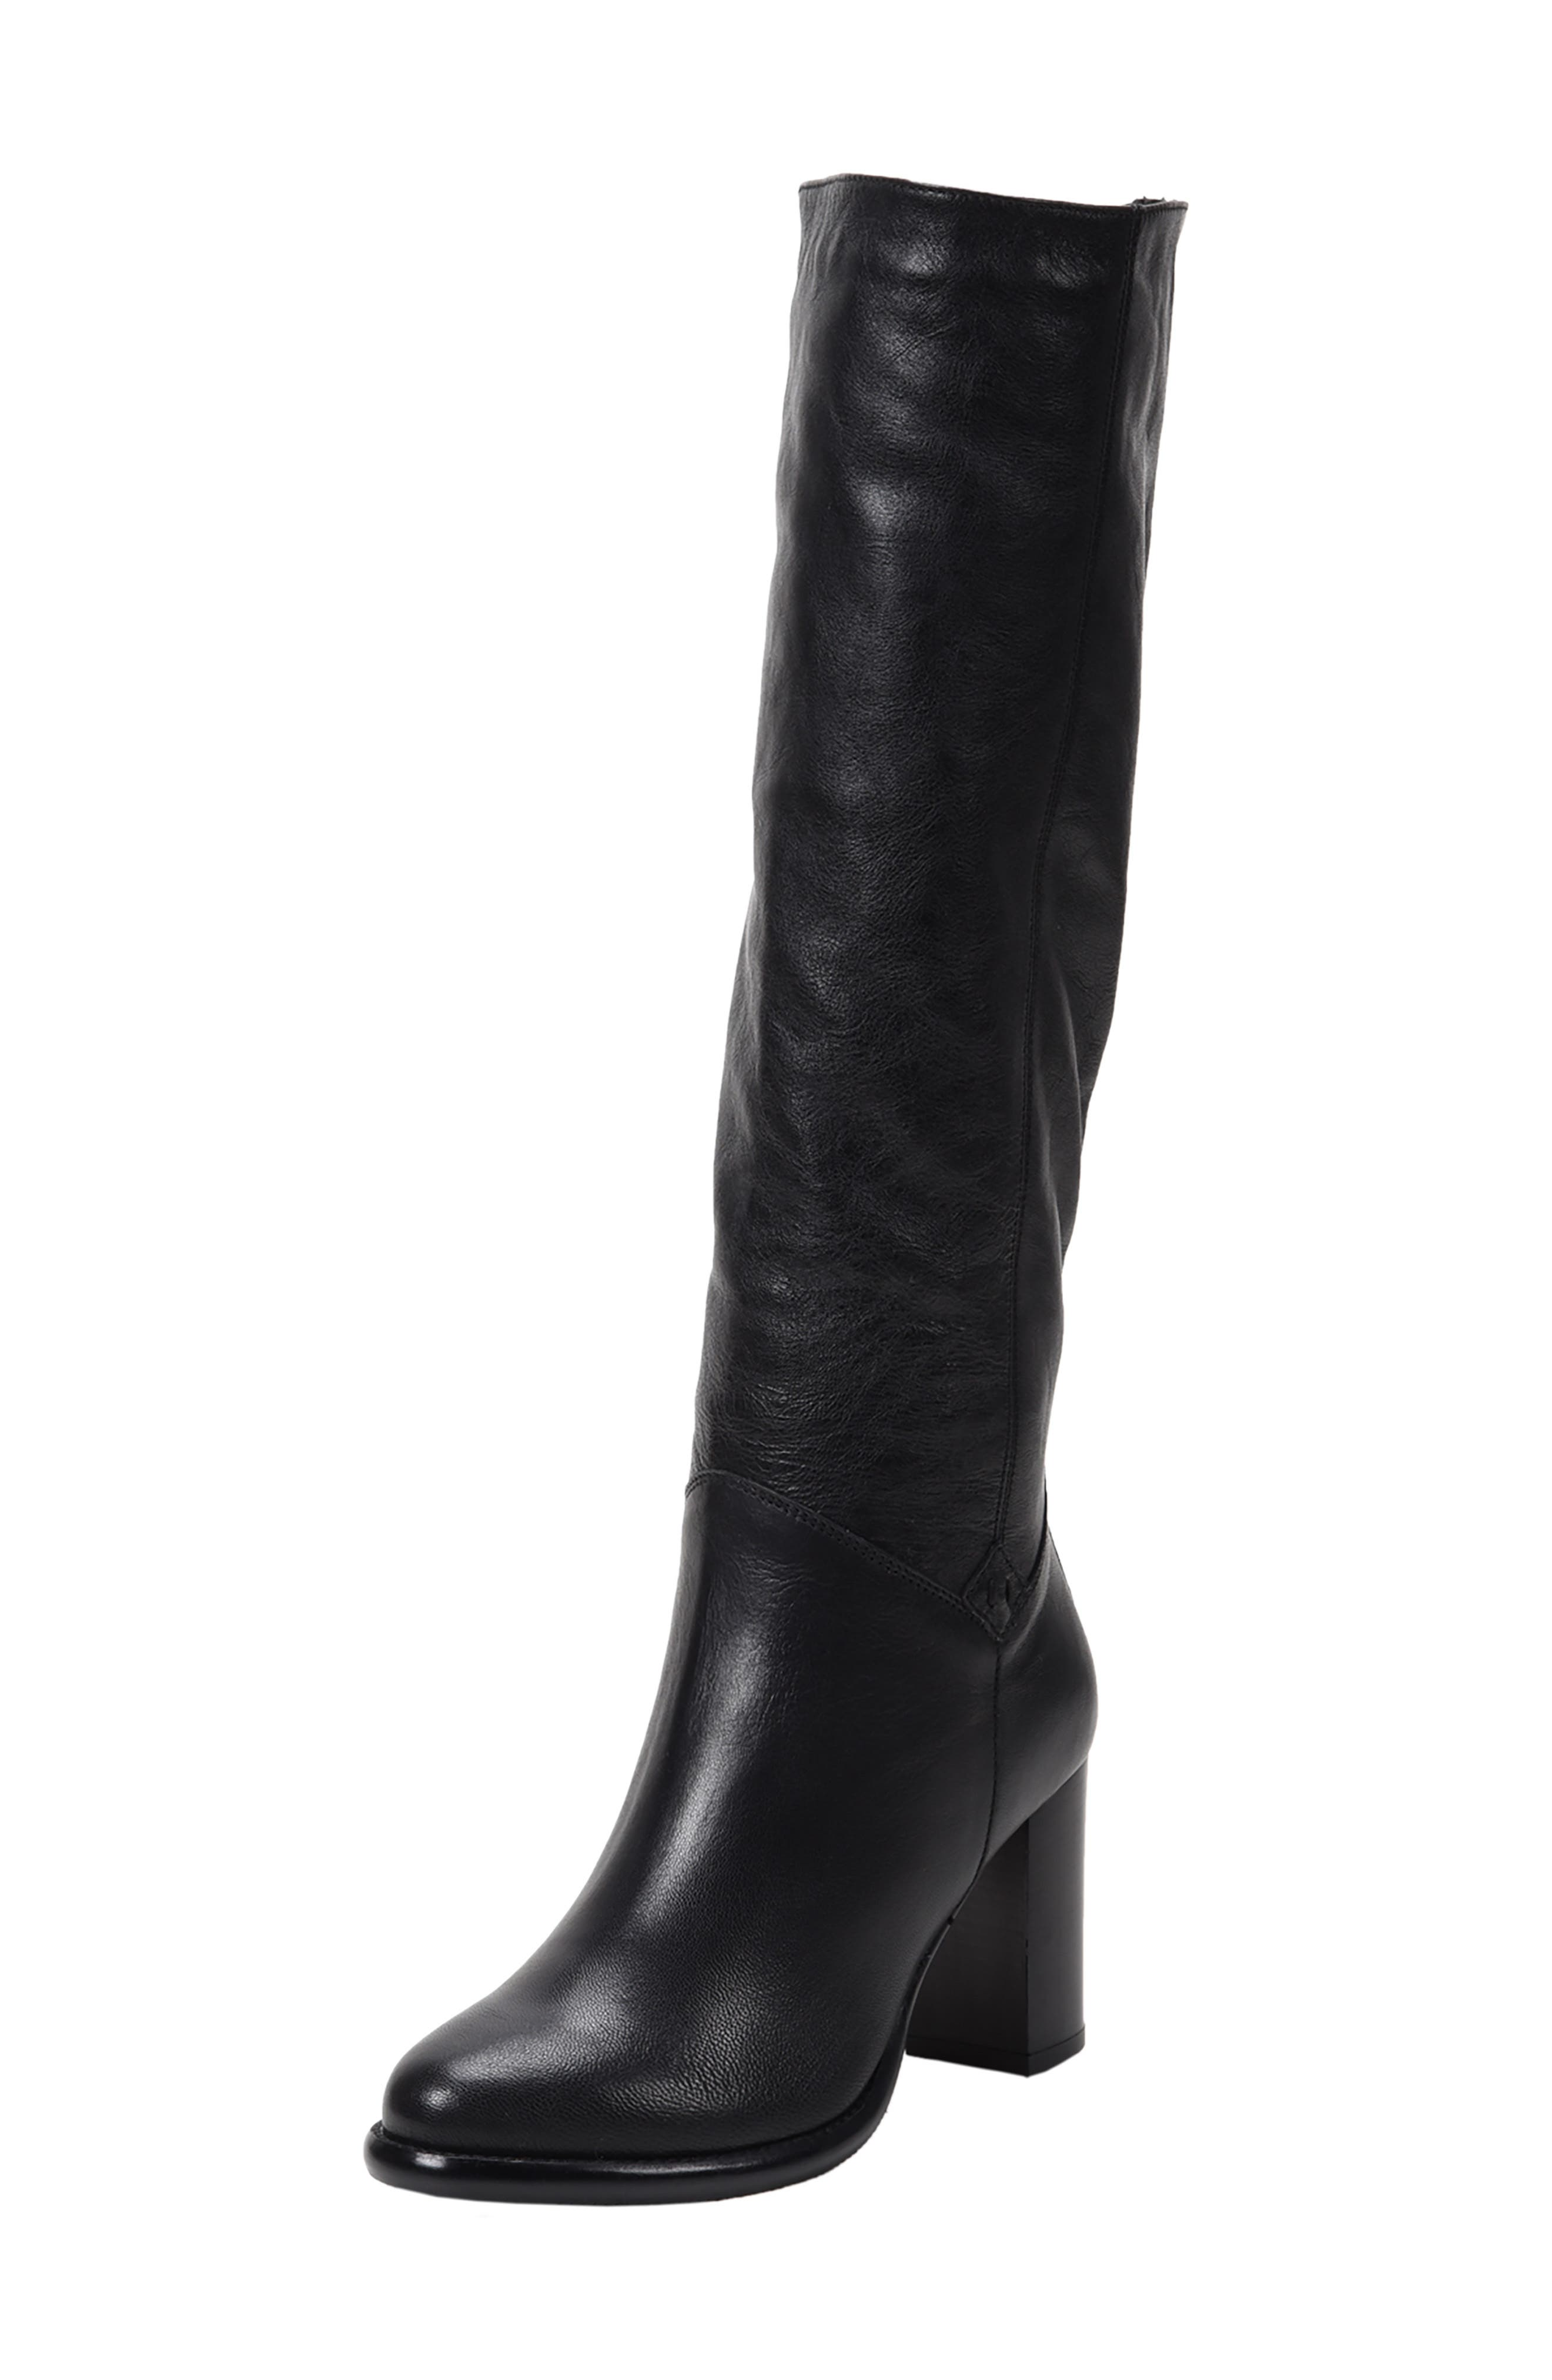 ROSS & SNOW Michela SP Waterproof Genuine Shearling Lined Boot, Main, color, BLACK METALLIC LEATHER